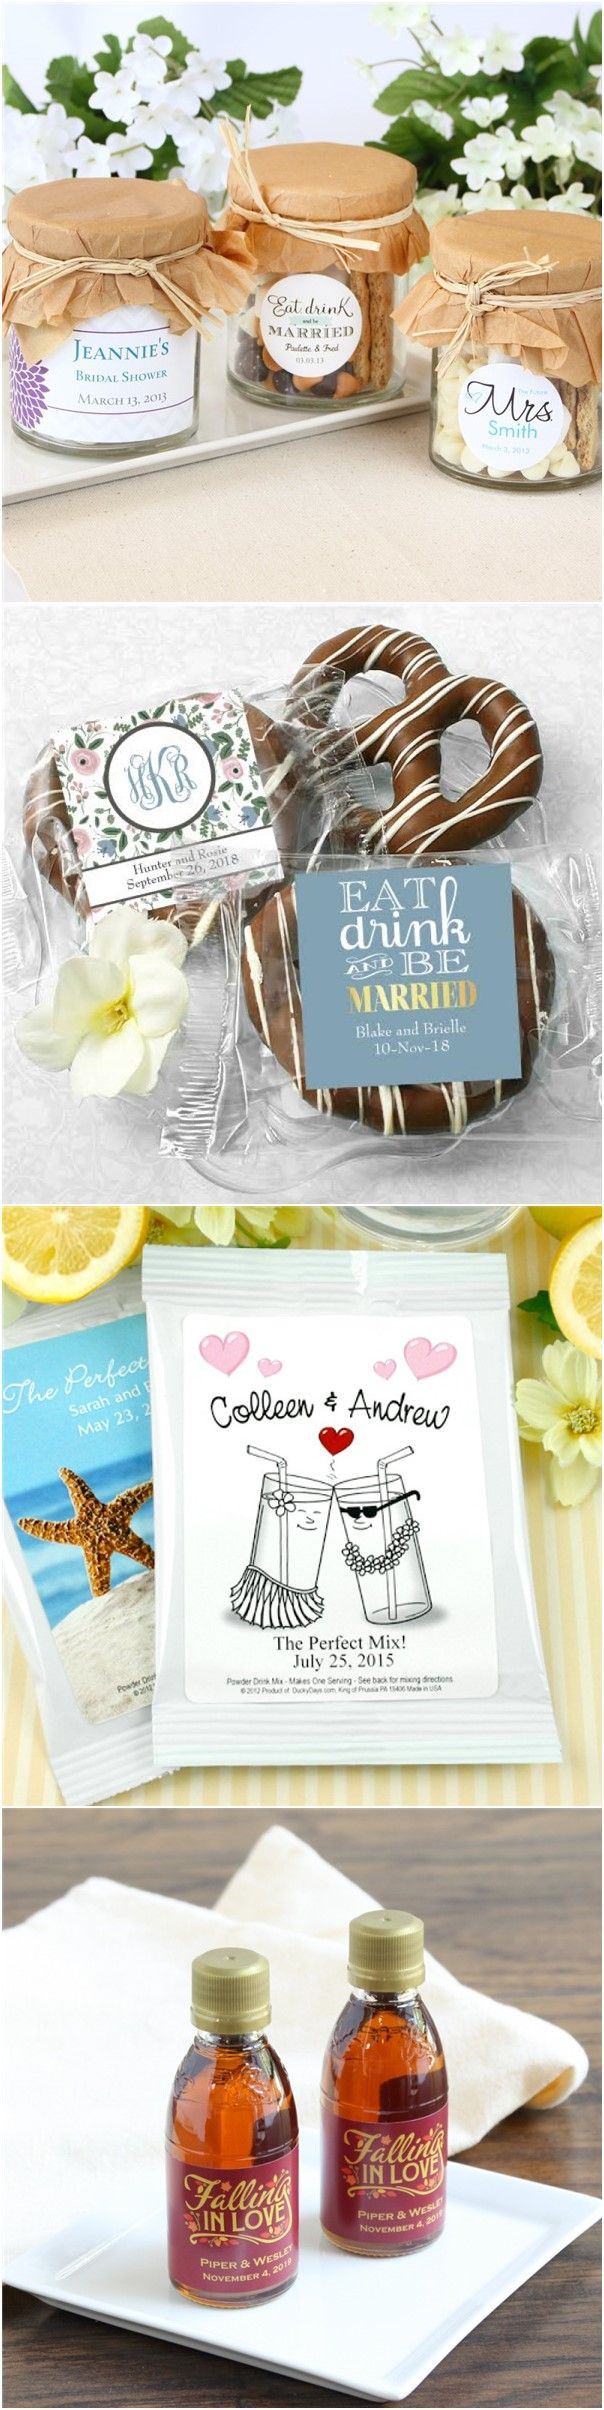 32 Budget-friendly Edible Wedding Favor Ideas That Inspire ...